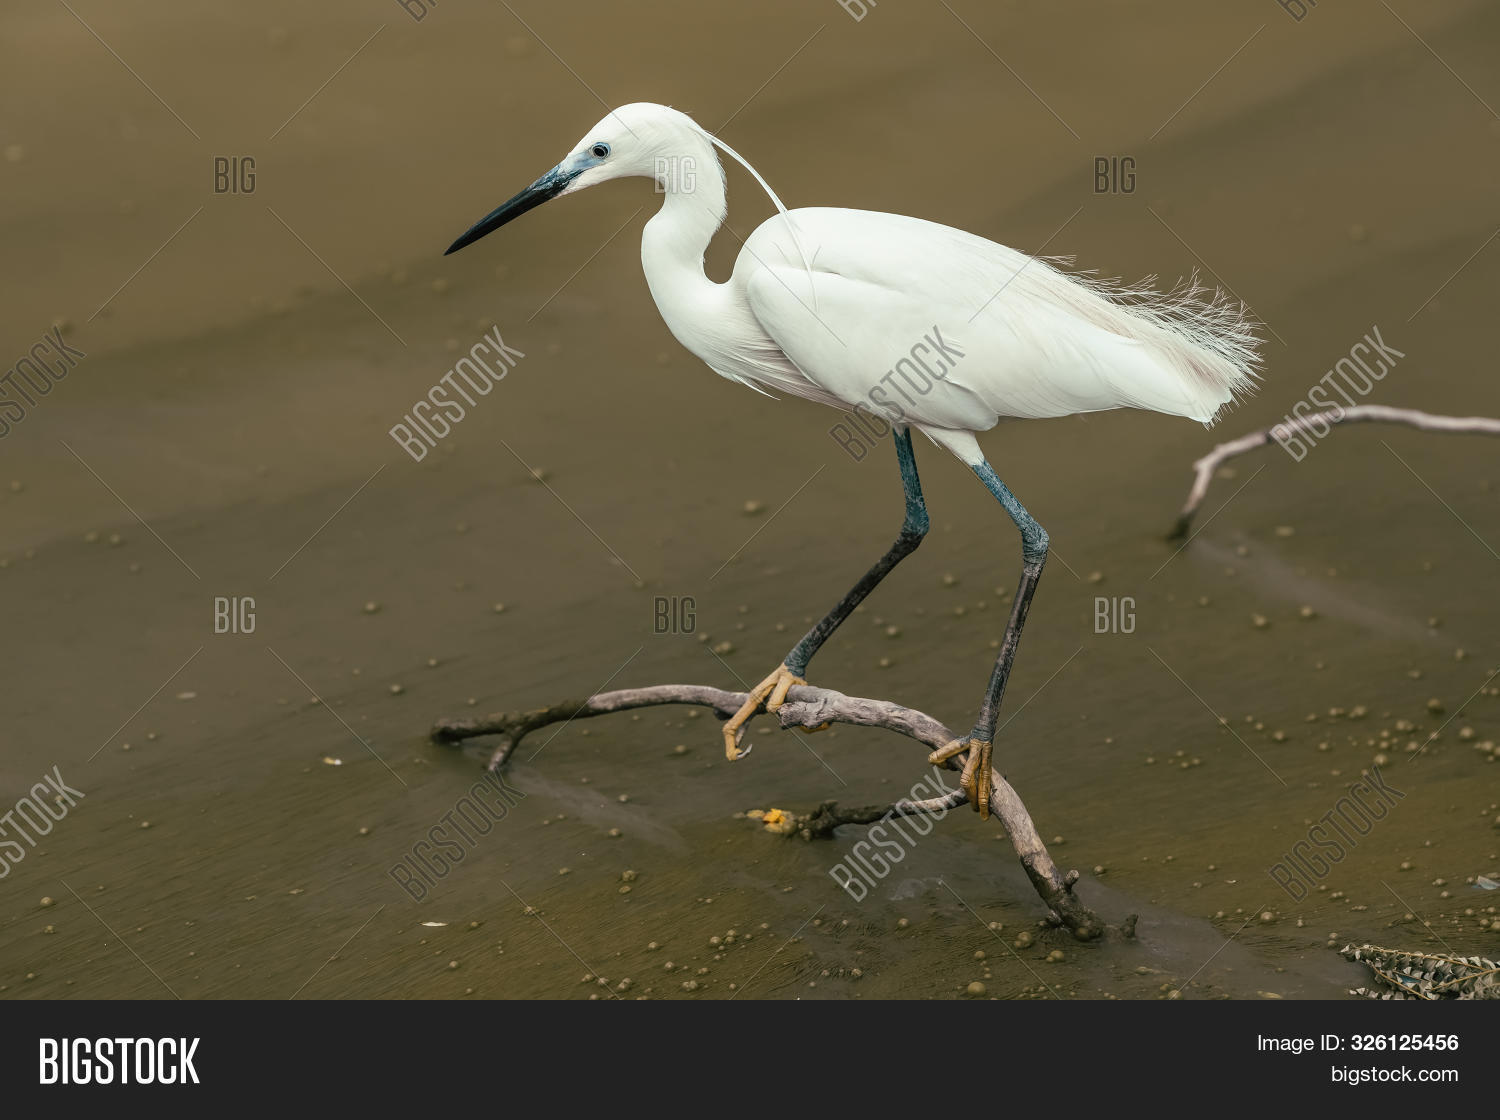 adult,animal,animals,aquatic,ardeidae,avian,background,beak,beautiful,beauty,bird,birds,birdwatching,cocoi,common,egret,fauna,feather,feathers,fishing,great,green,grey,heron,lake,large,natural,nature,neck,ornithology,outdoor,peak,pond,portrait,river,south,standing,swamp,tail,thai,thailand,tropical,wader,wading,water,wetland,white,wild,wildlife,wings